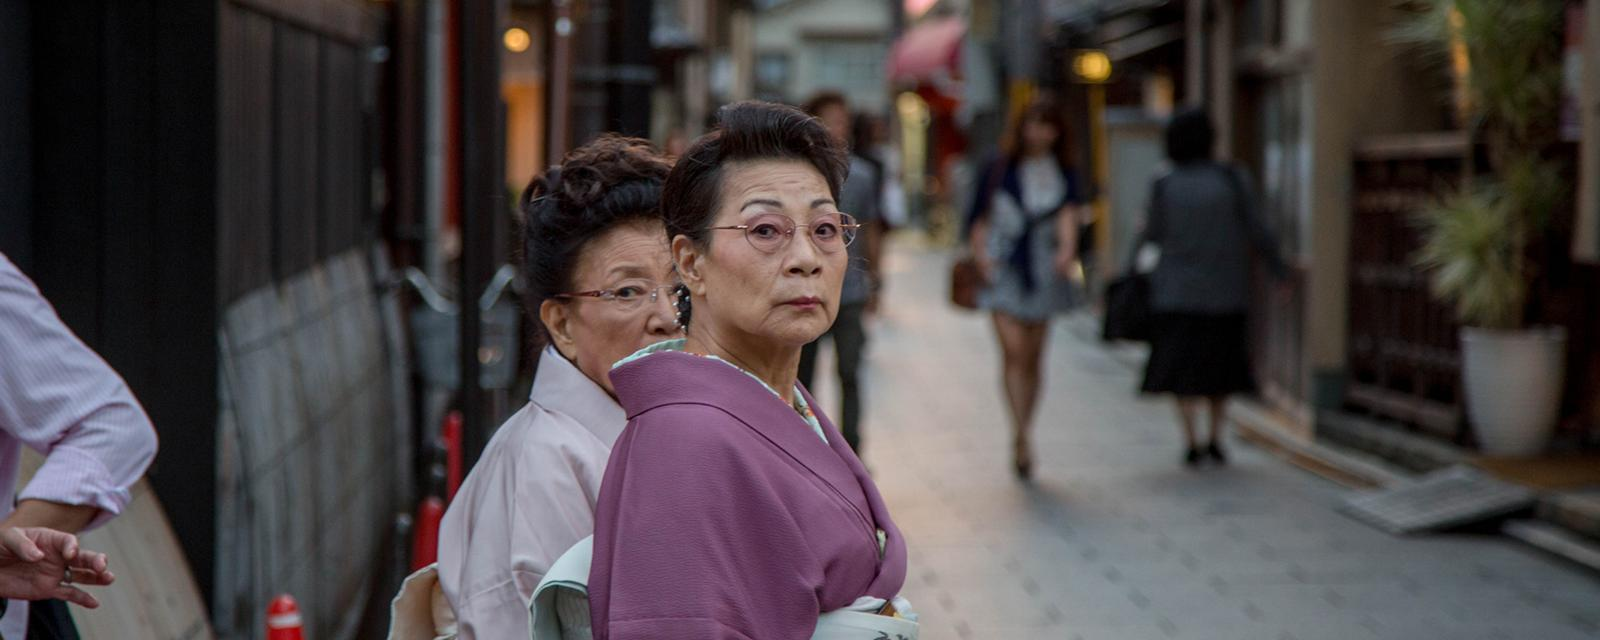 More seniors, more foreigners: How Japan is changing - BBC Worklife